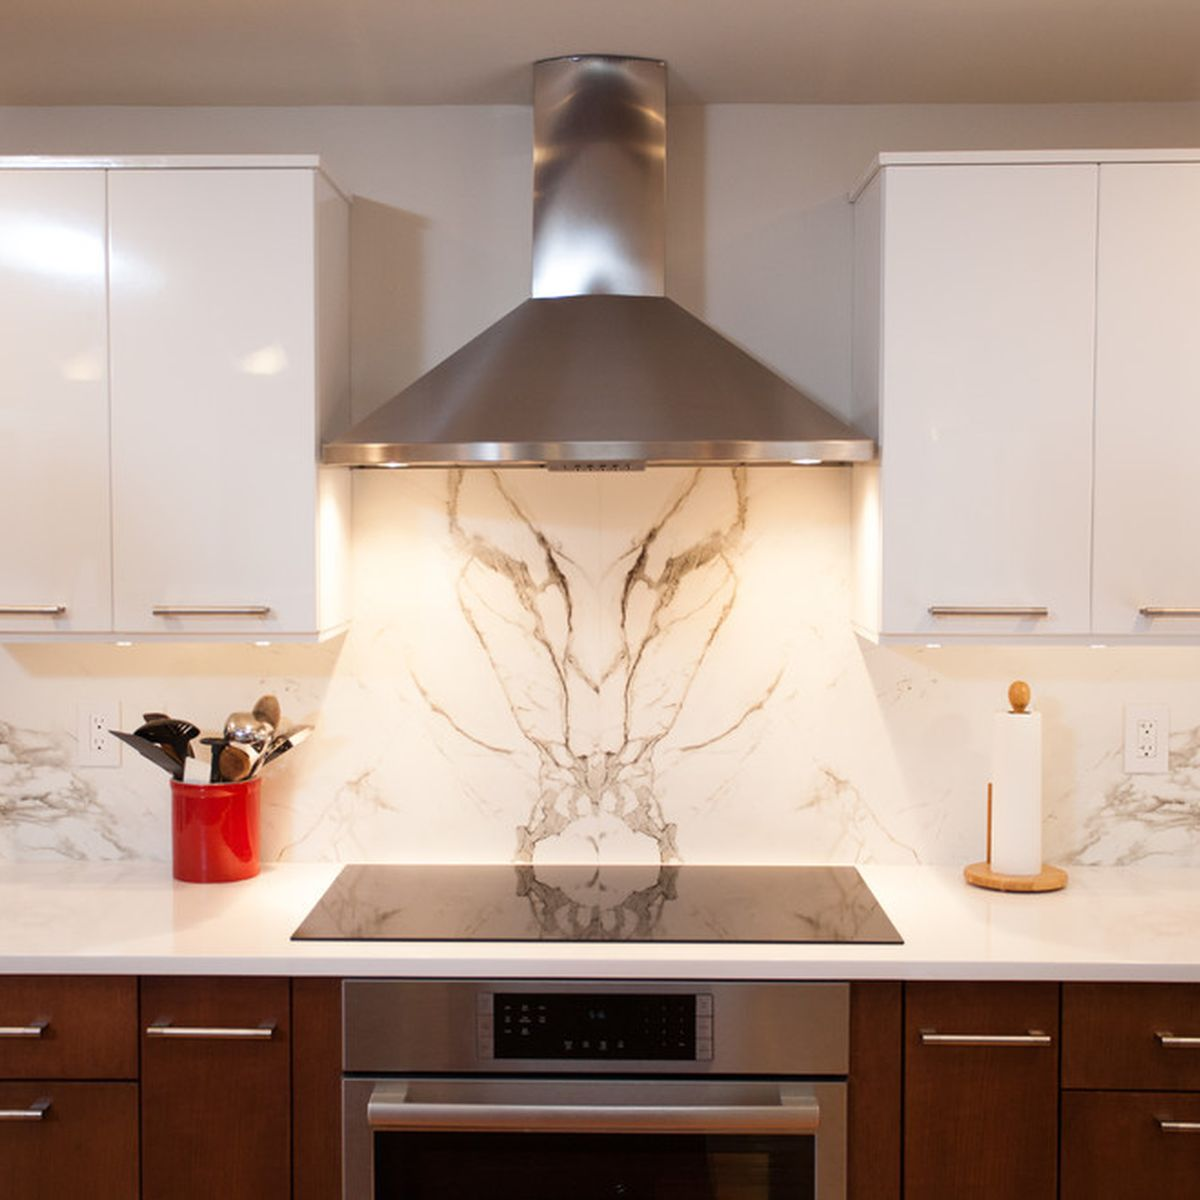 Everything you need to know about kitchen splashback tiles 4